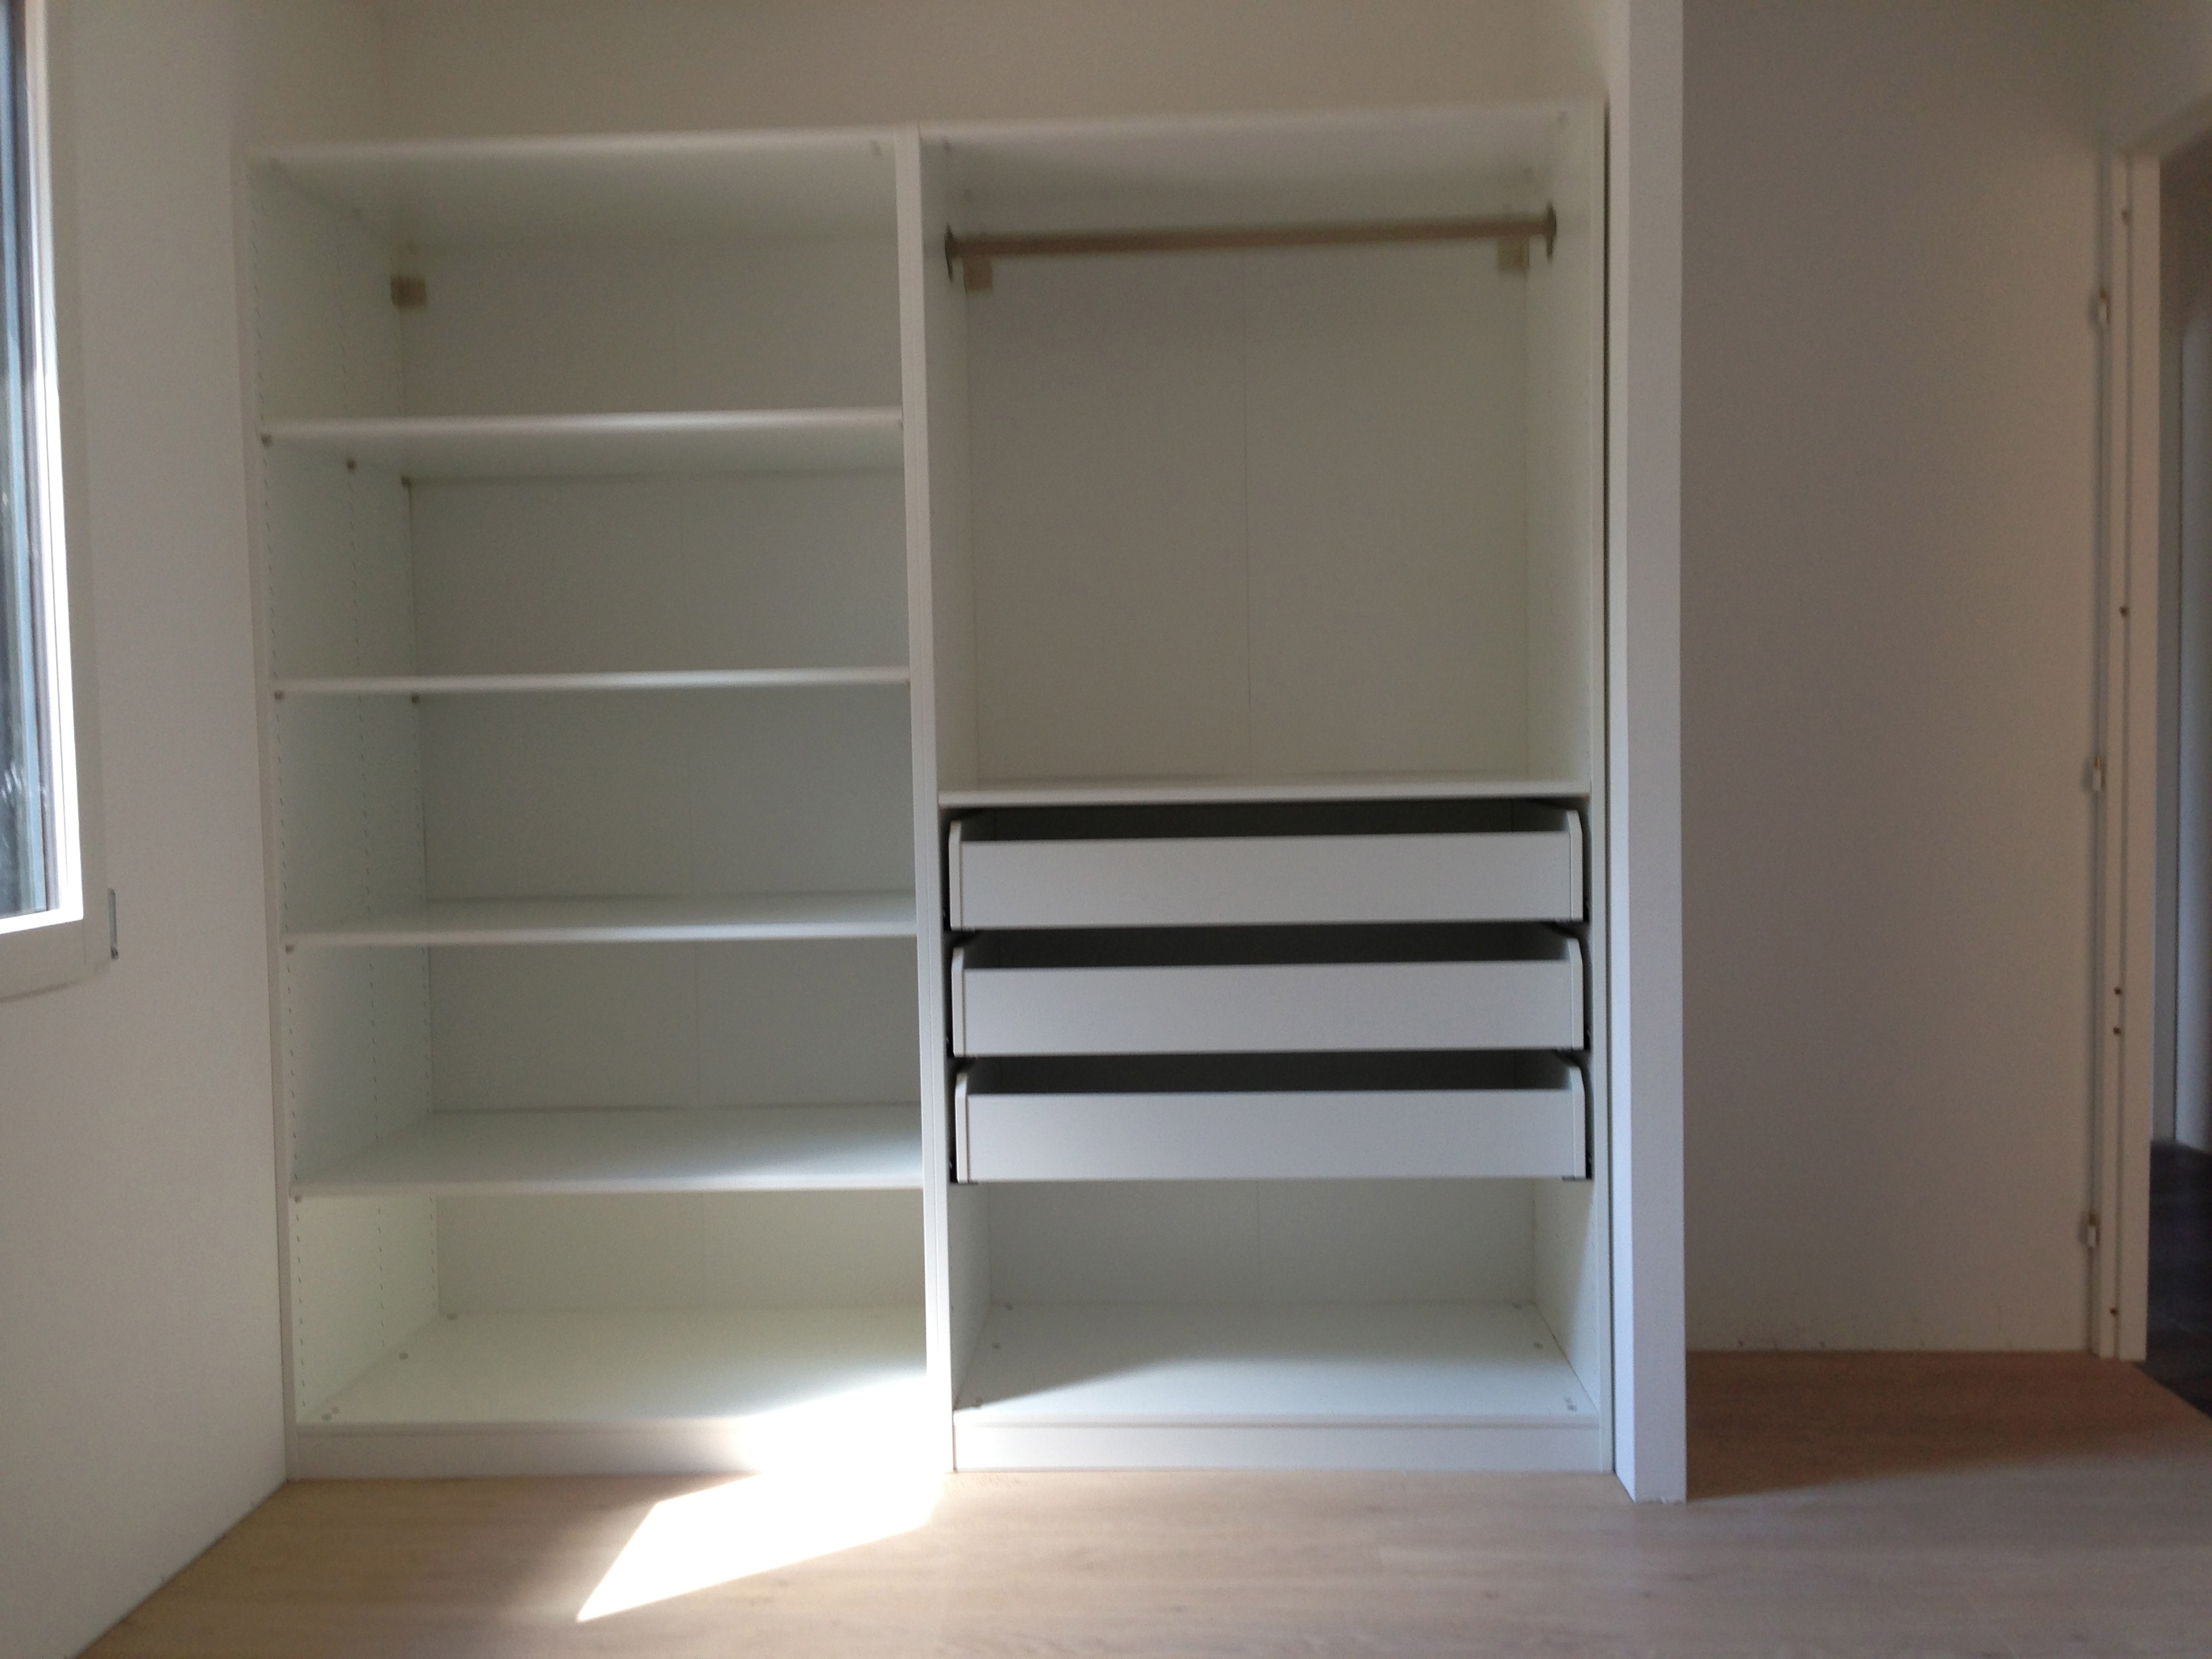 Amenagement placard chambre ikea - Ikea amenagement dressing ...